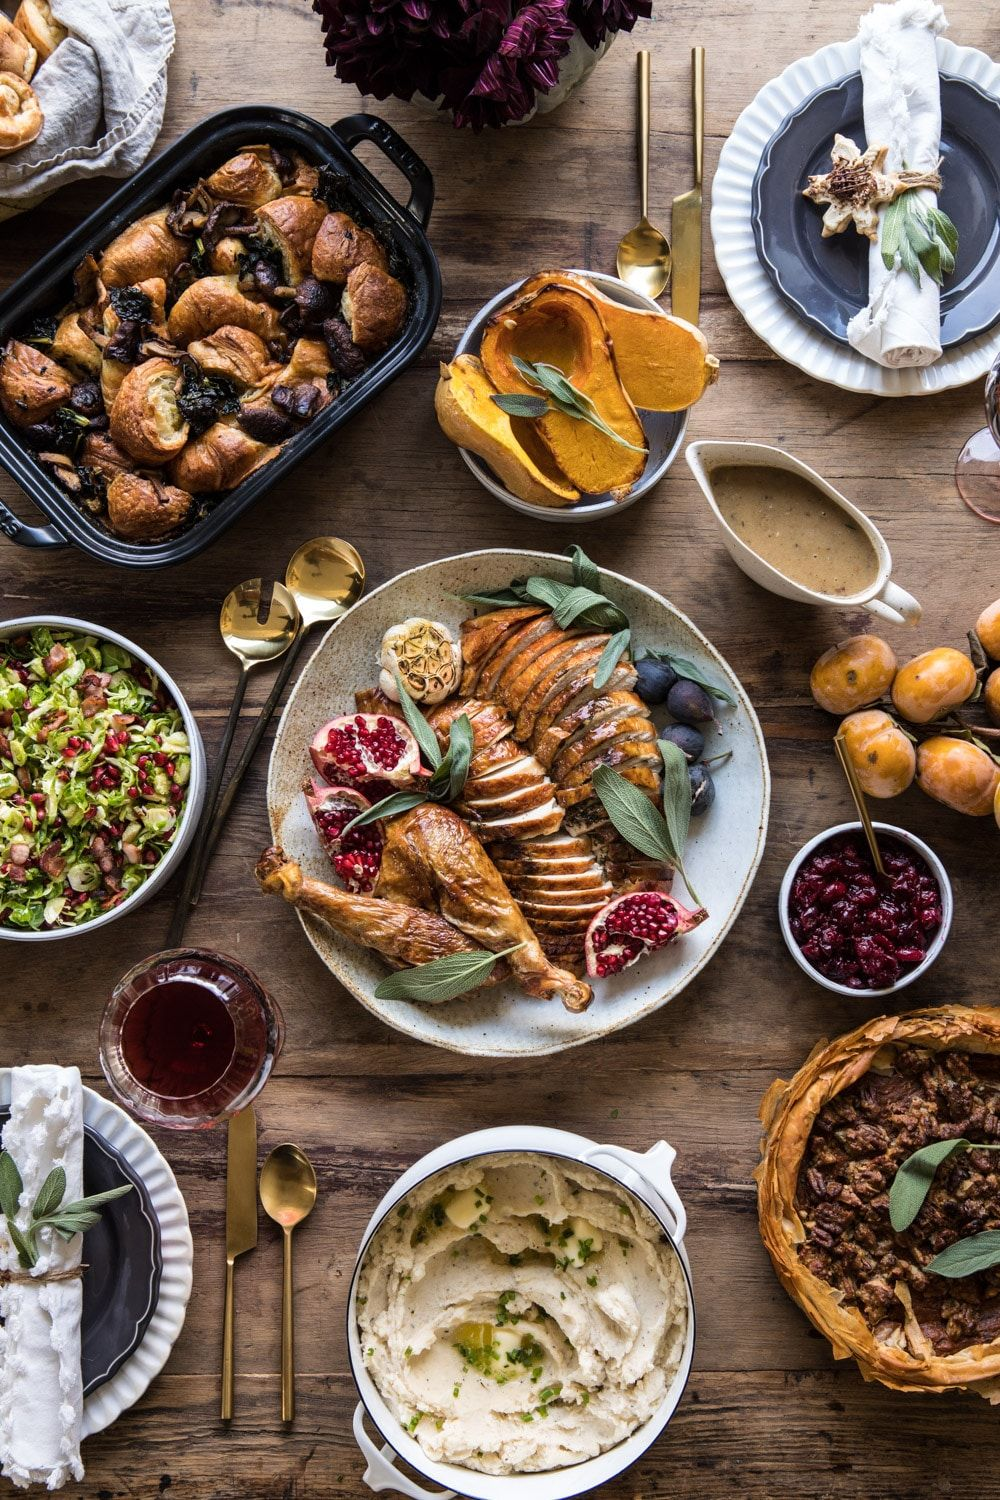 Forum on this topic: My Favorite Friendsgiving Holiday, my-favorite-friendsgiving-holiday/